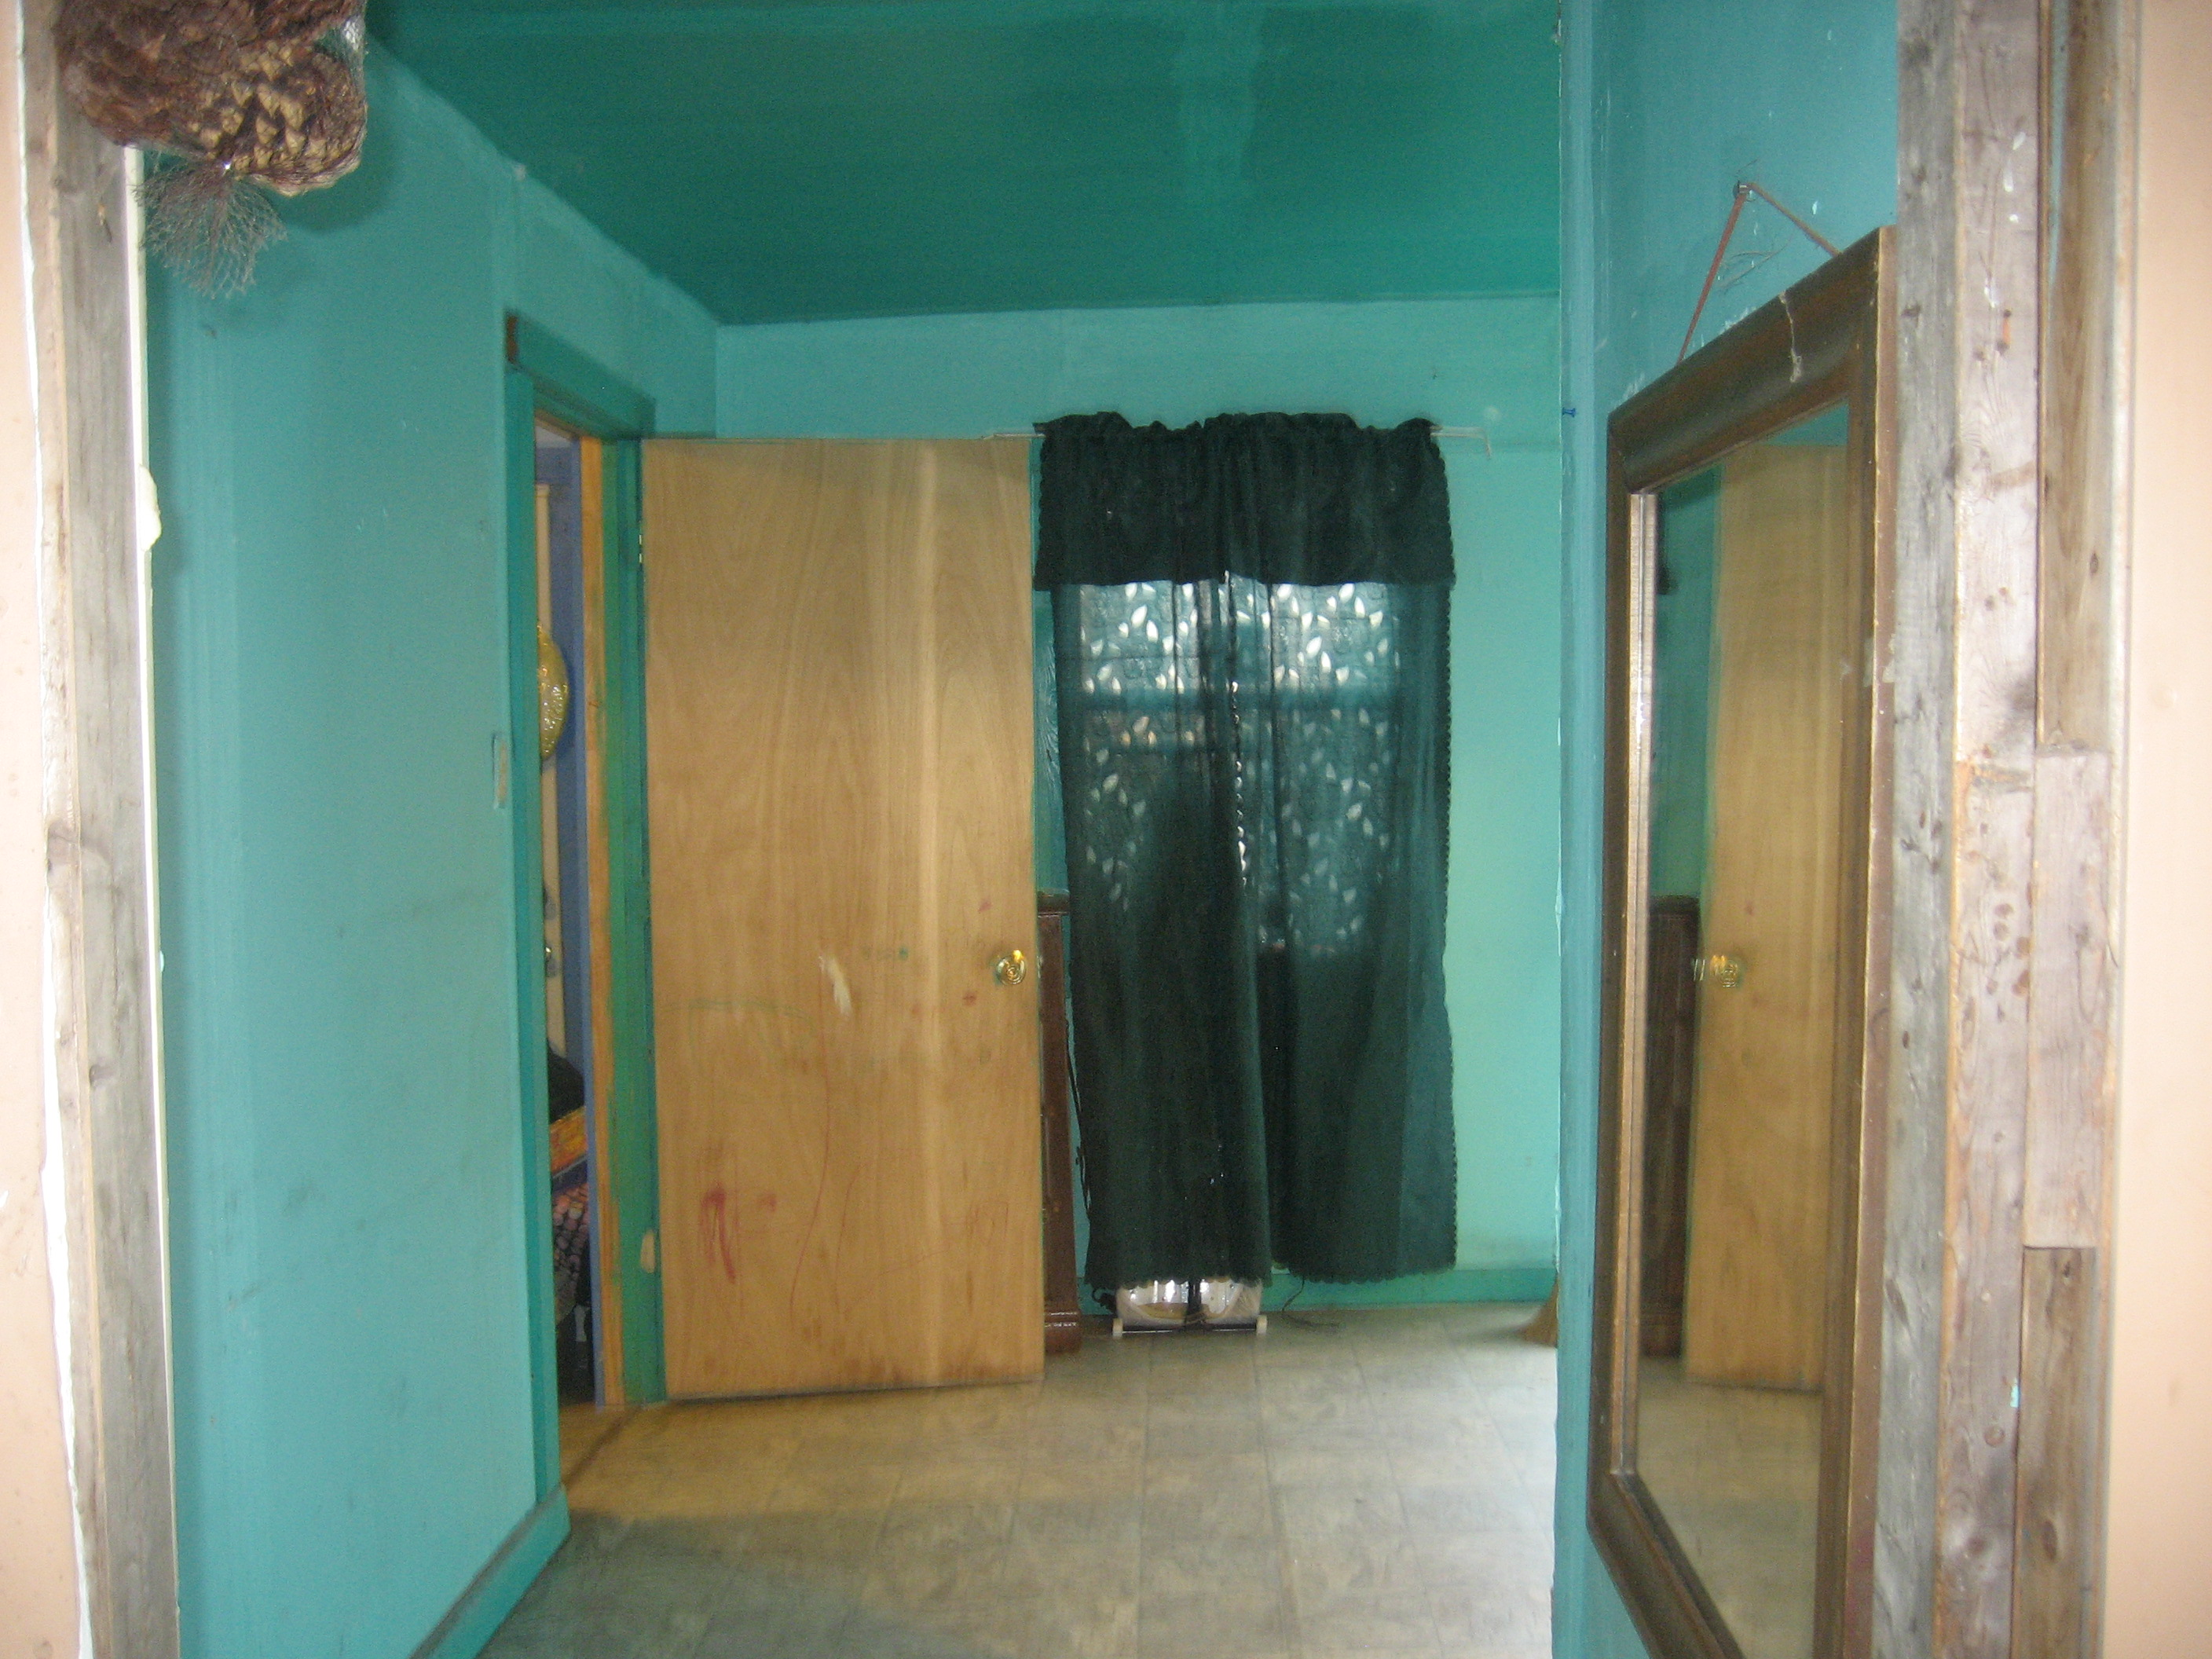 Interior of the new home which was donated by Estella Garza and her husband Sonny Fernandez.